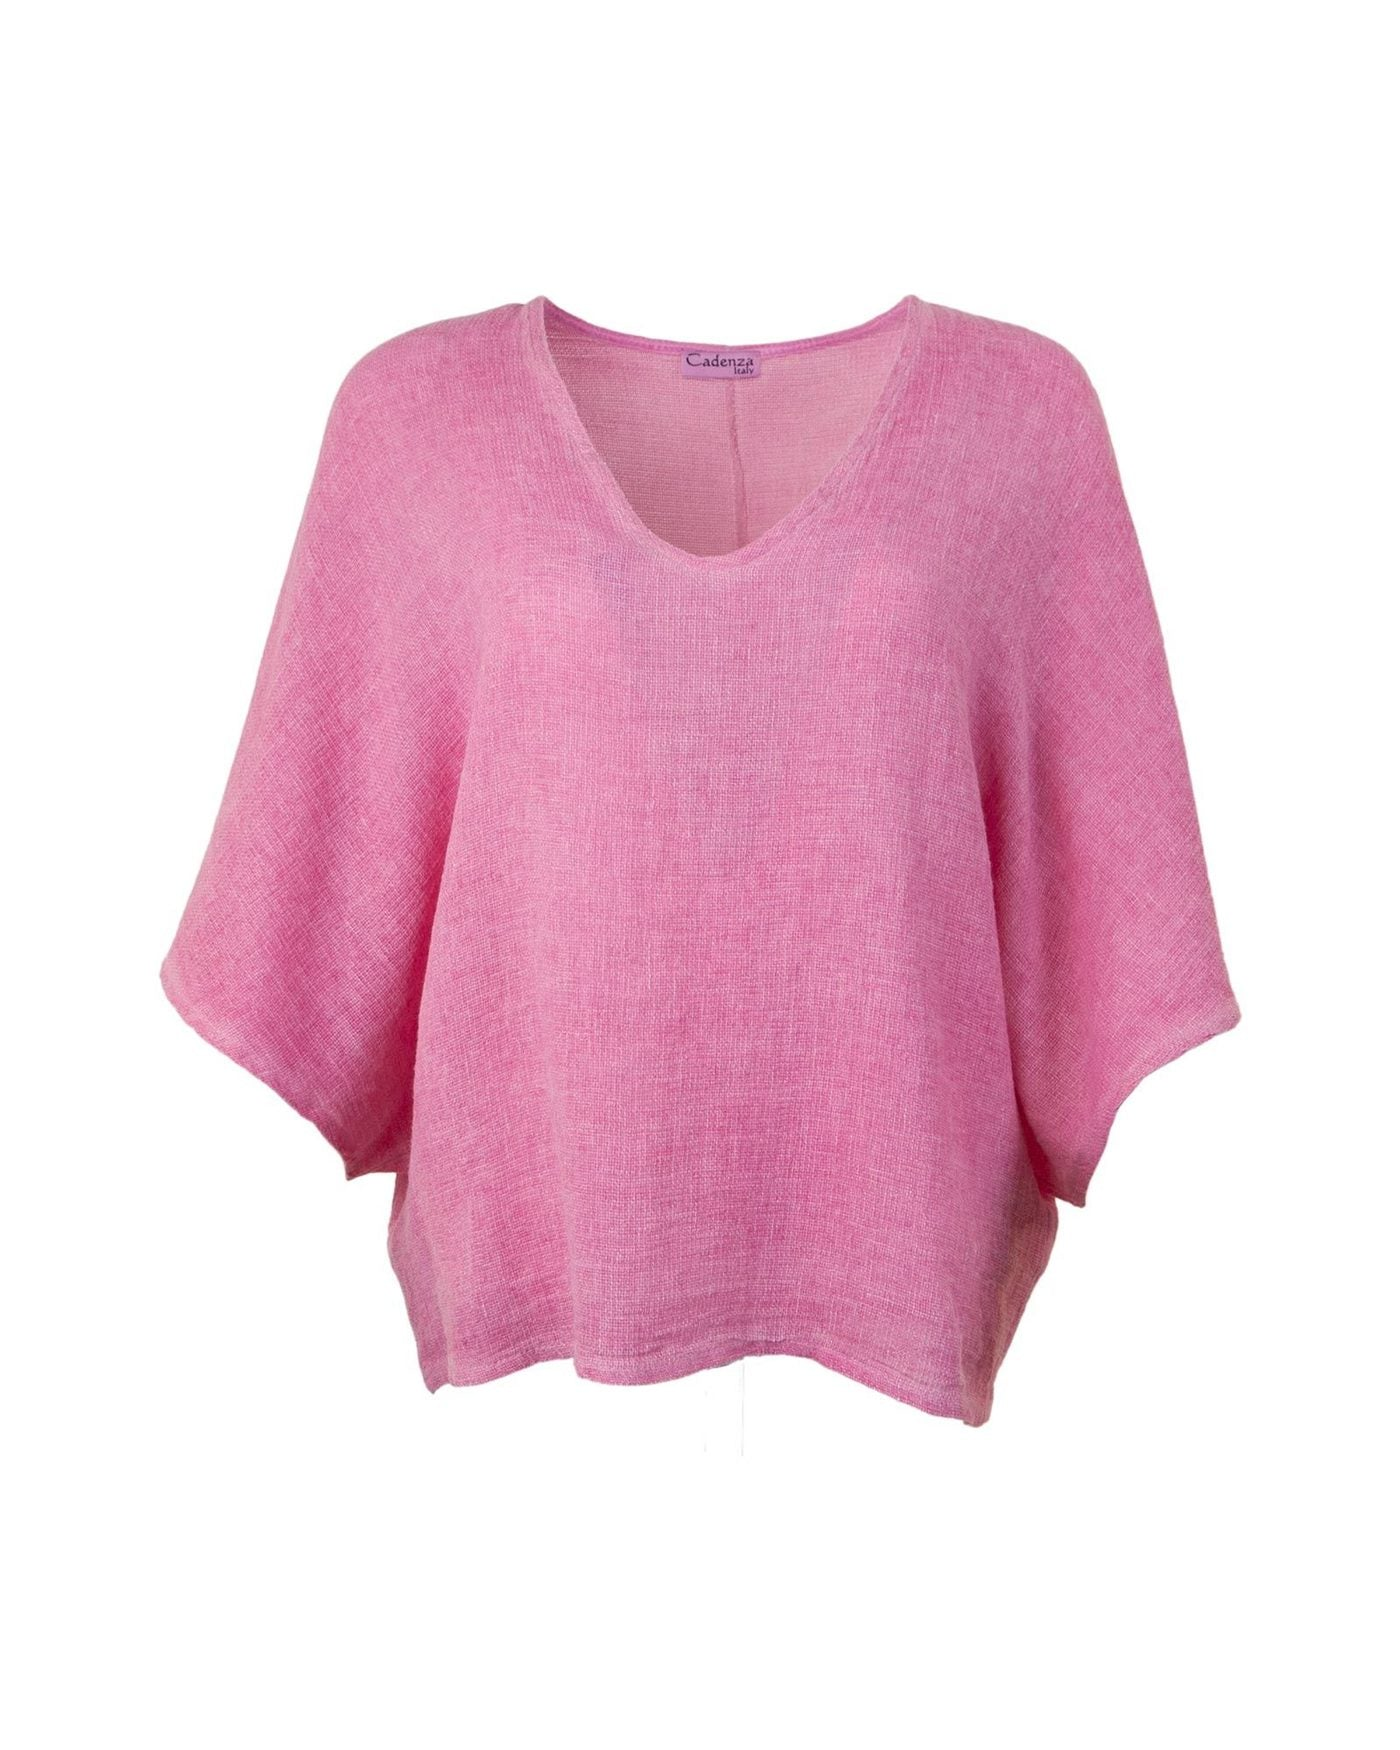 Cadenza Italy Cotton and Linen Mix Top - Pink